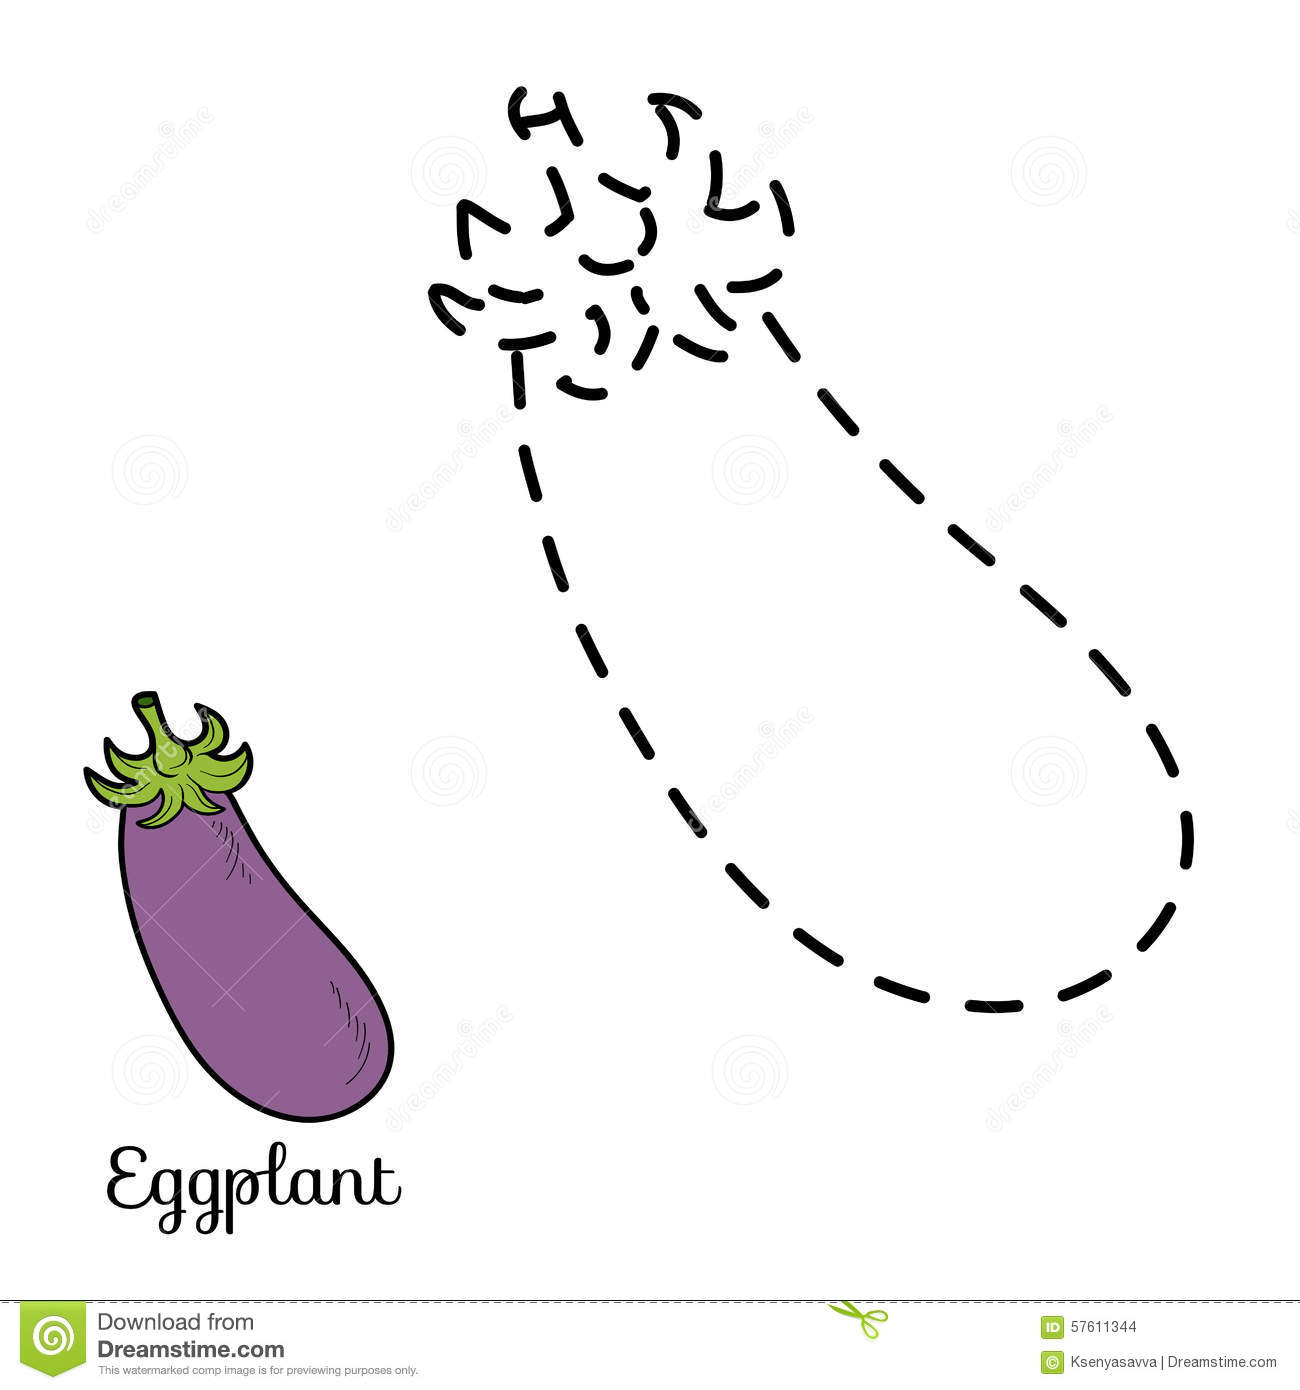 Connect The Dots Fruits And Vegetables Eggplant Stock